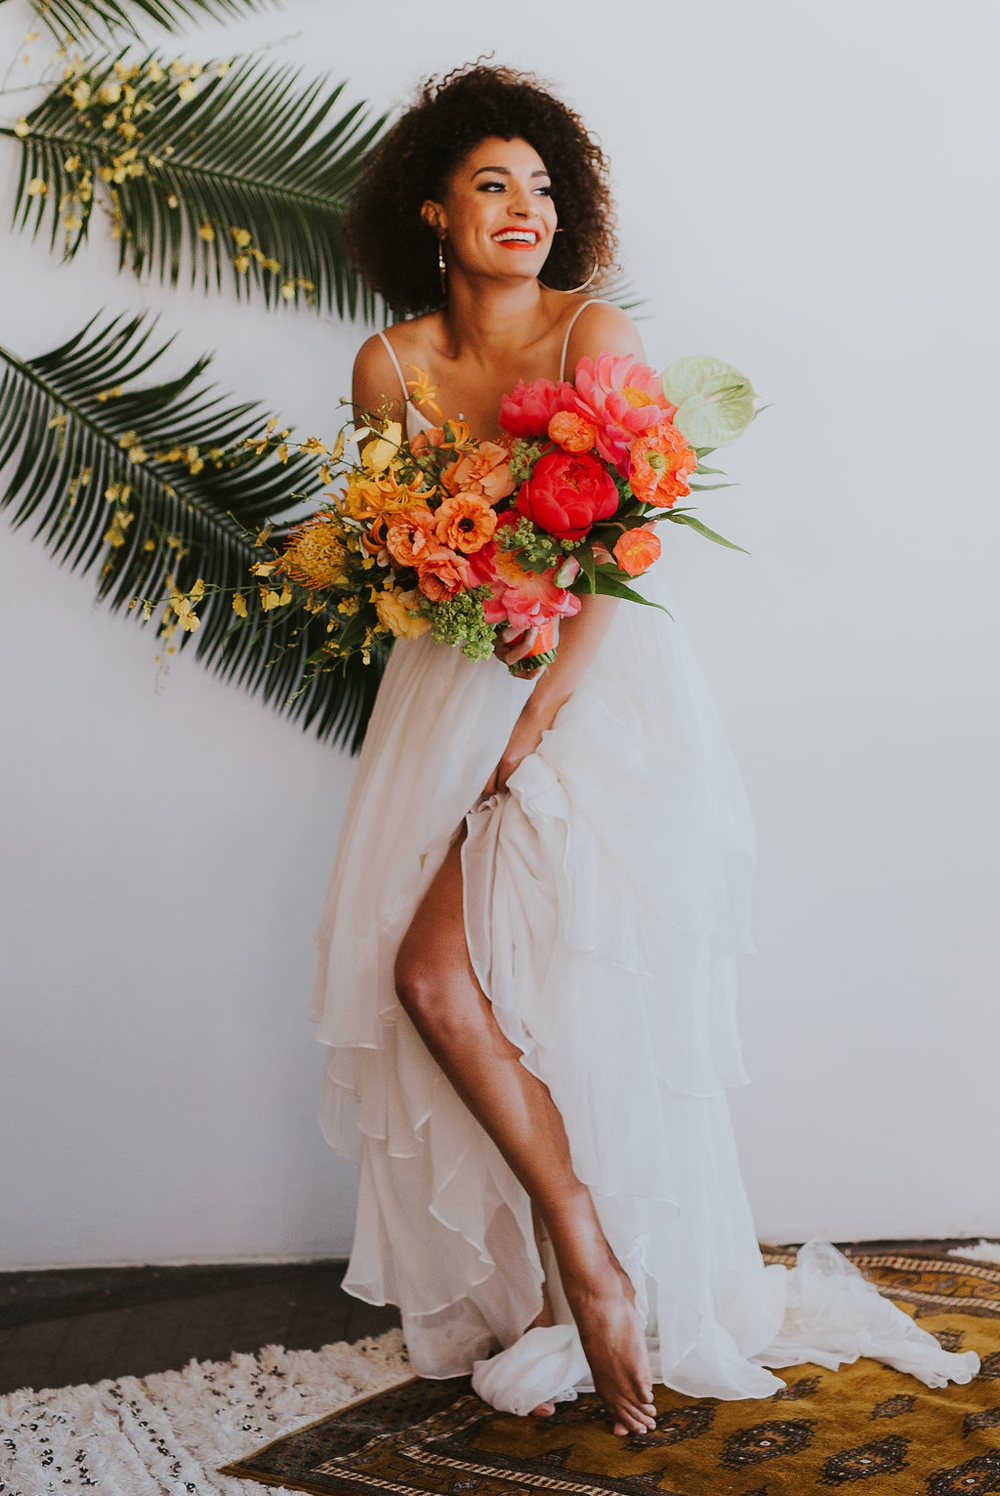 tropical-styled-shoot-seattle-floral-design10.jpg